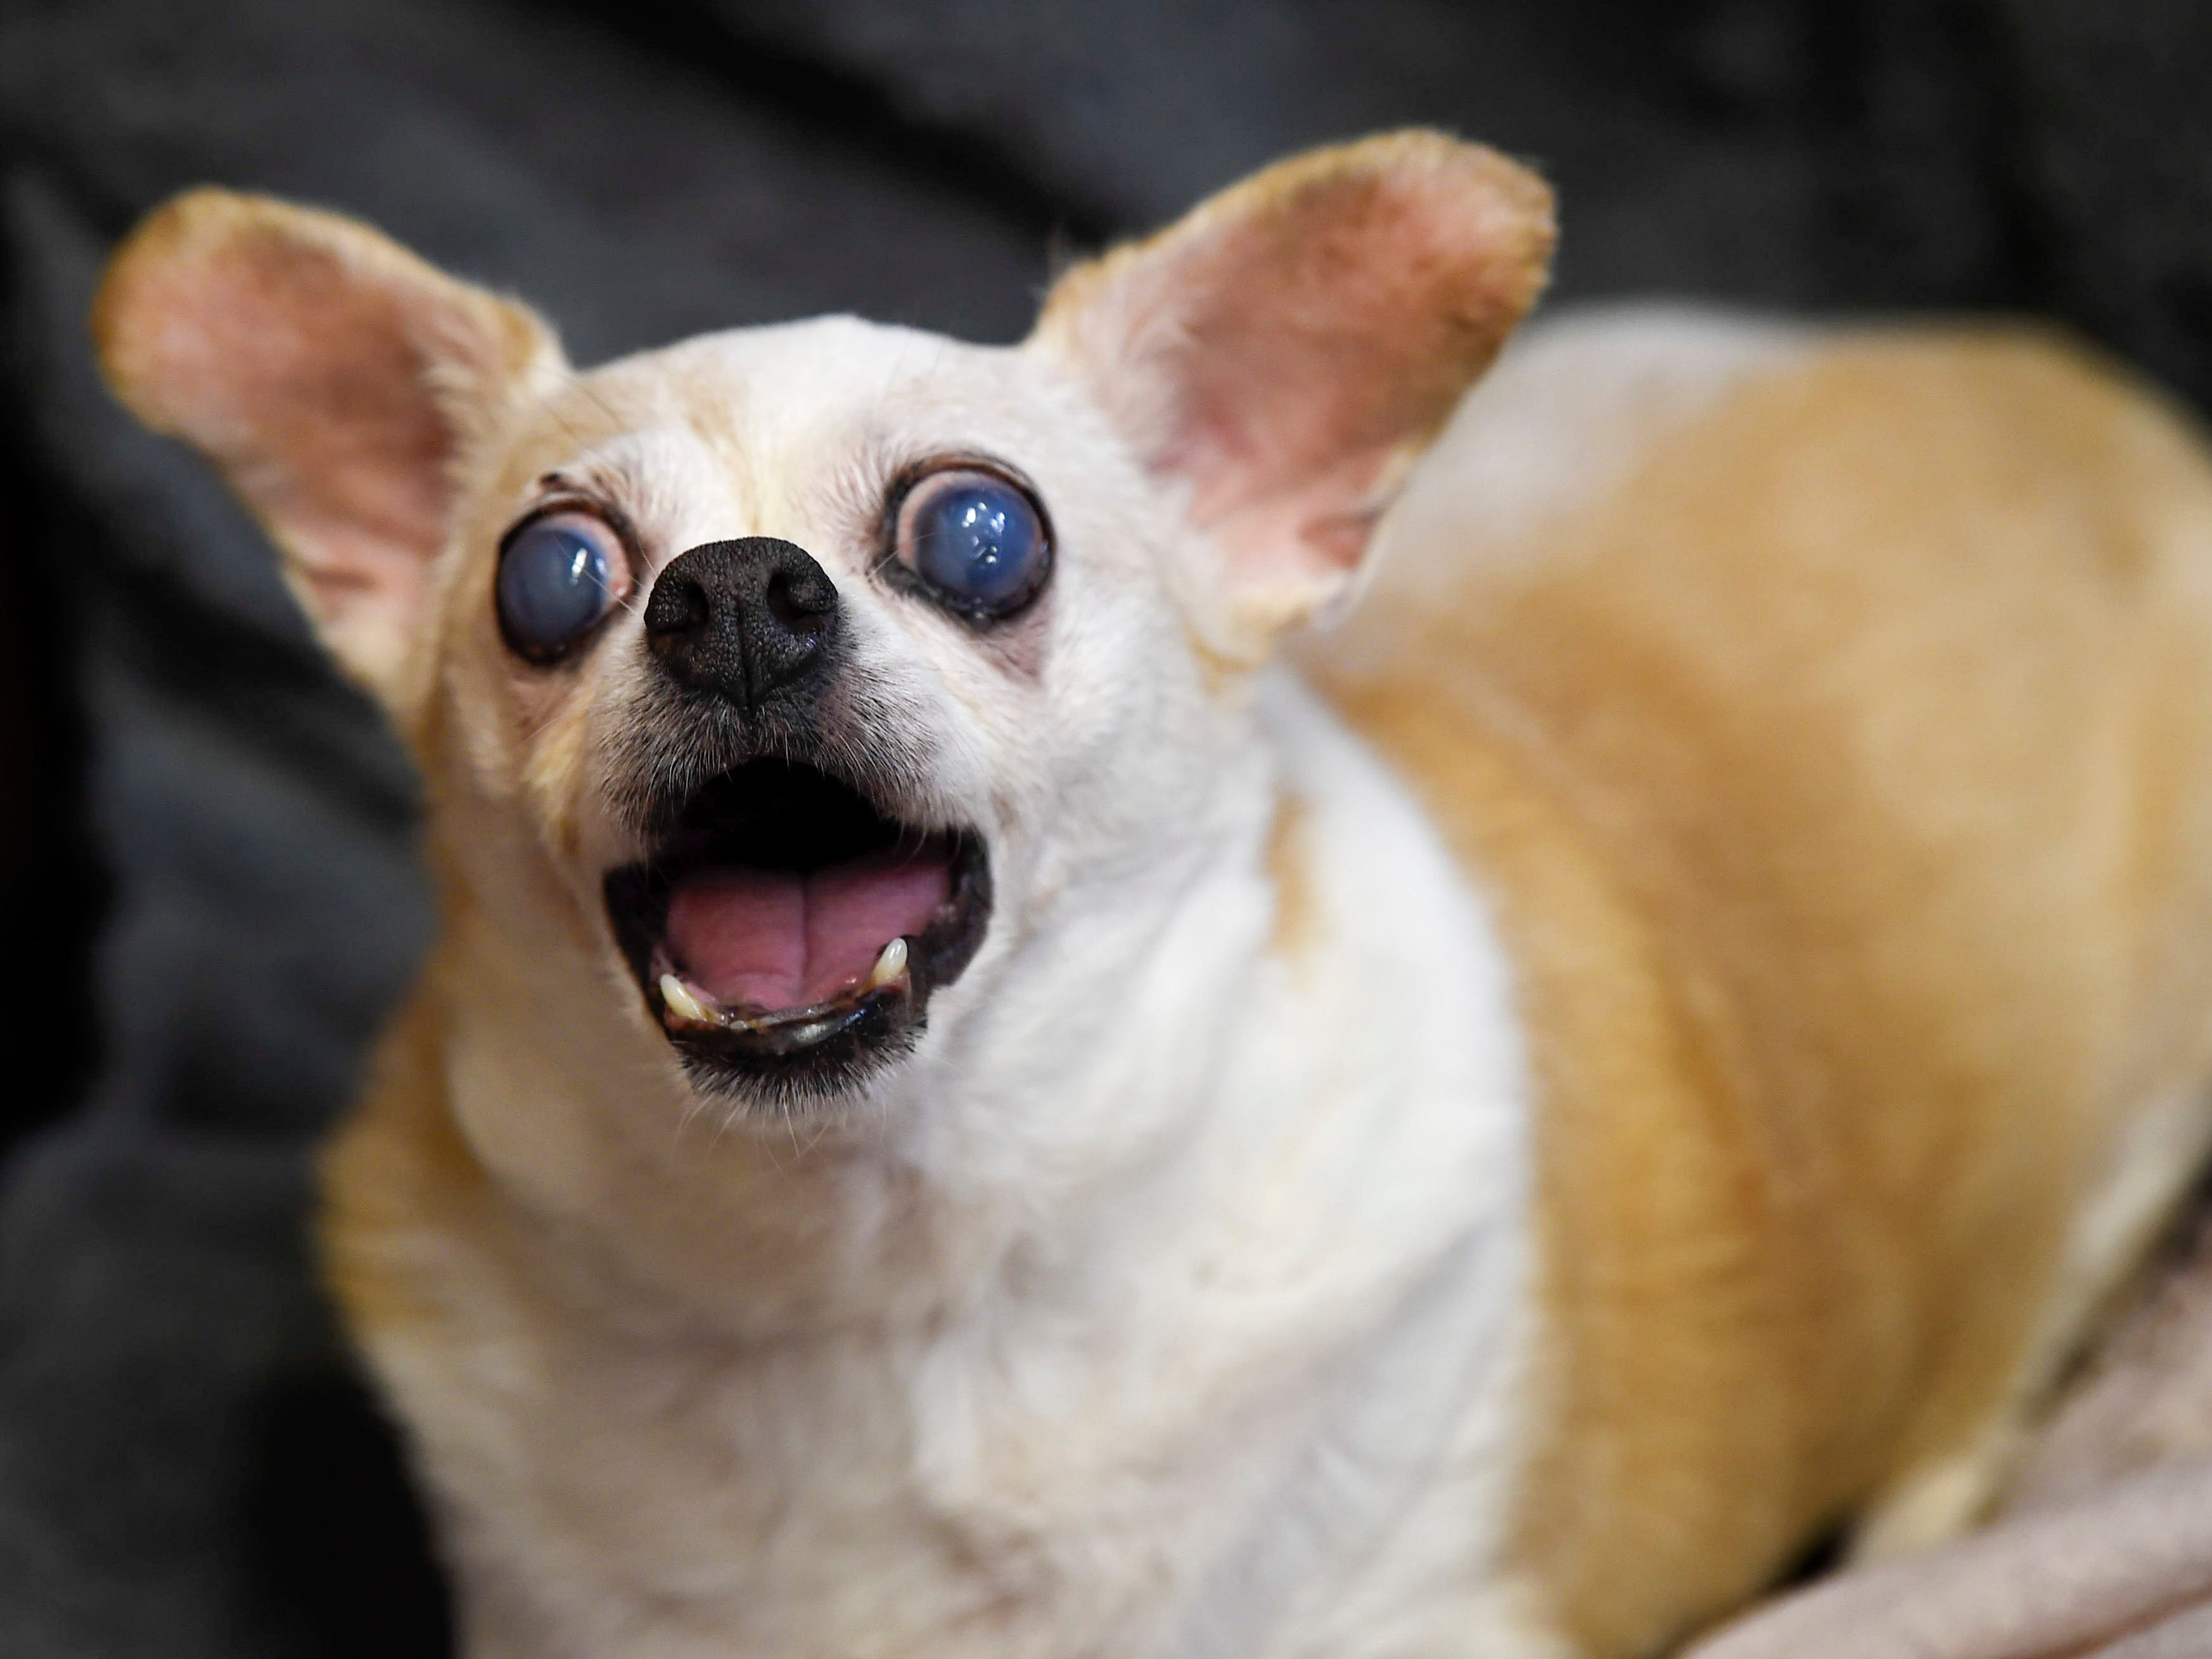 Nina a blind senior Chihuahu mix barks at visitors at the Old Friends Senior Dog Sanctuary in Mount Juliet, Tenn., Monday, Sept. 24, 2018.